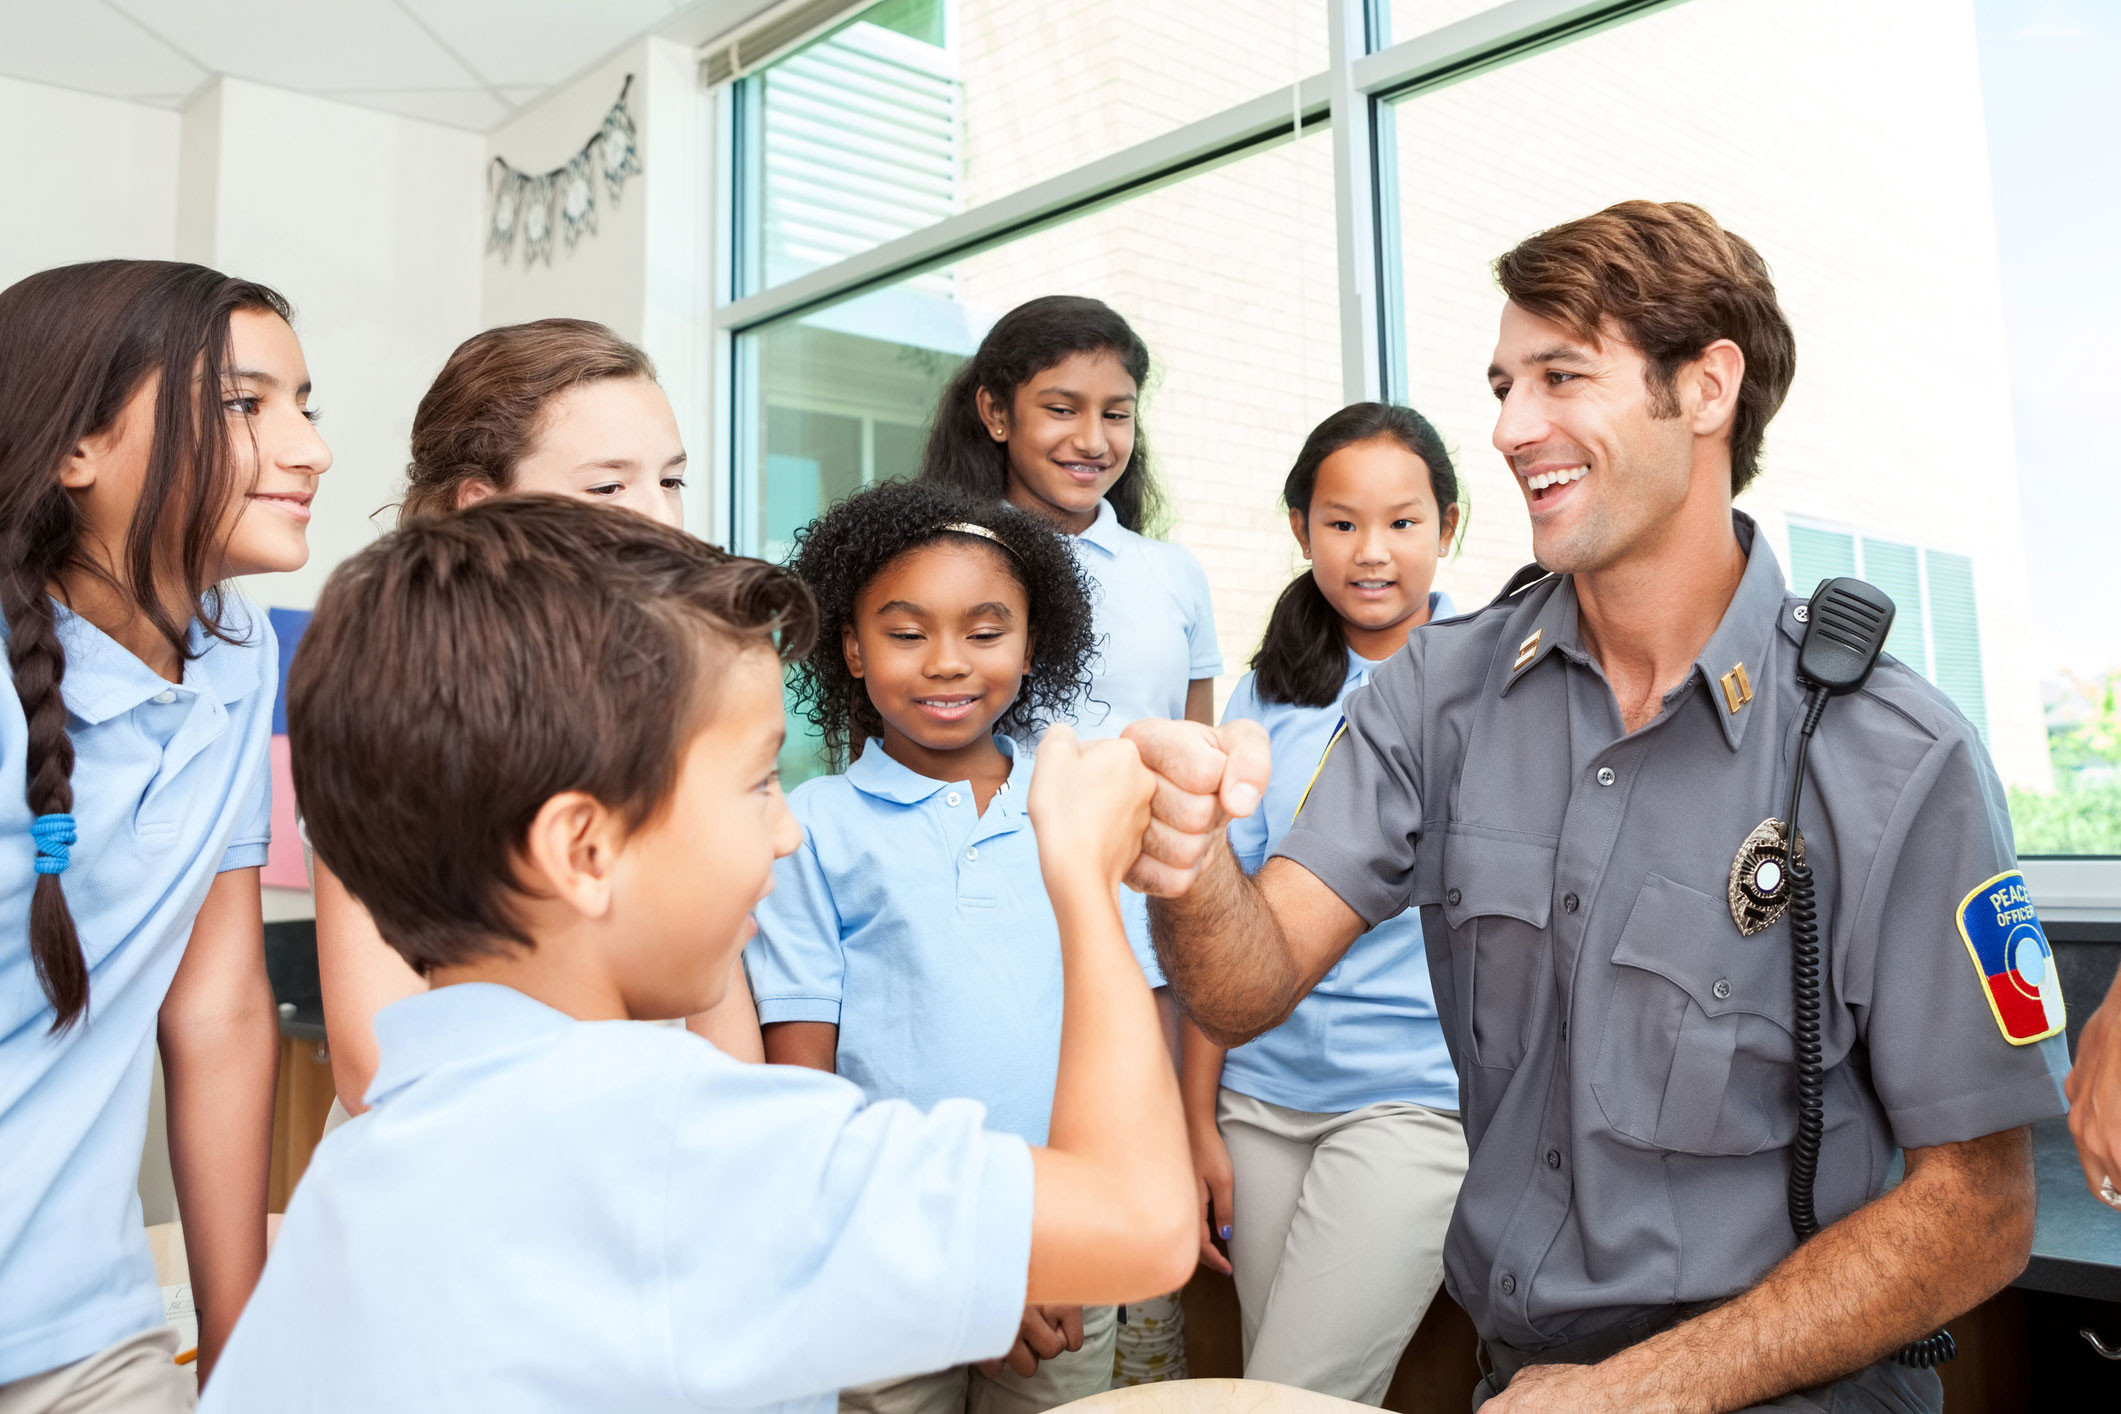 Police Officer hanging out with school kids.